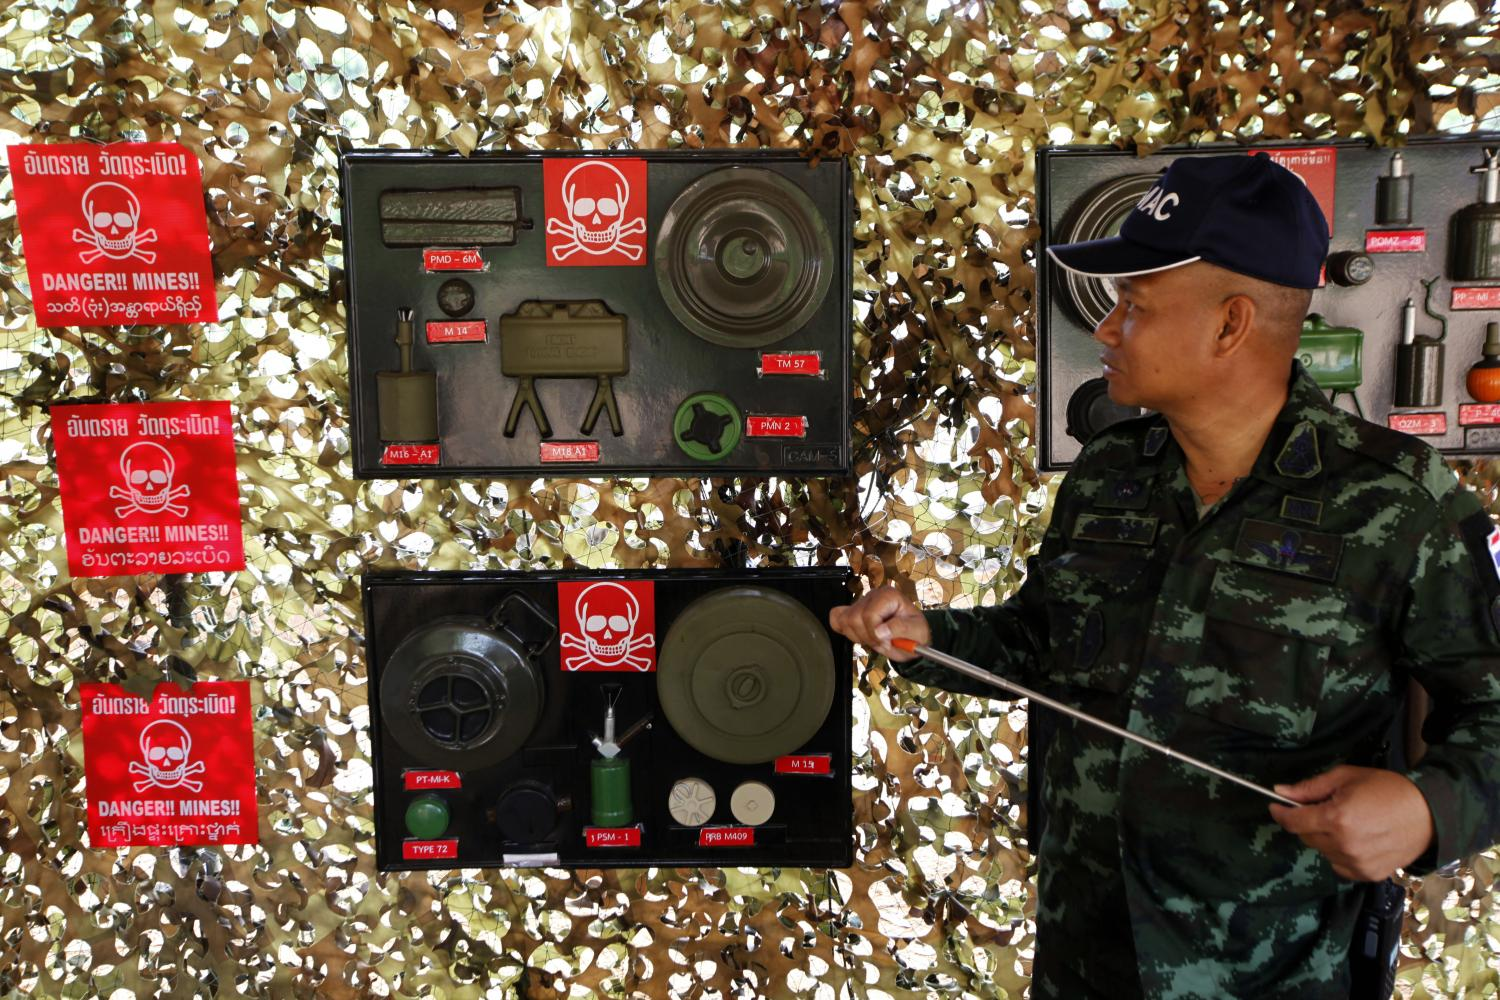 An officer shows different types of landmines during a press conference about the Defence Ministry's operation to destroy 3,133 landmines in Phakdi-Phandin village in Sa Kaeo.(Photo by Wichan Charoenkiatpakul)